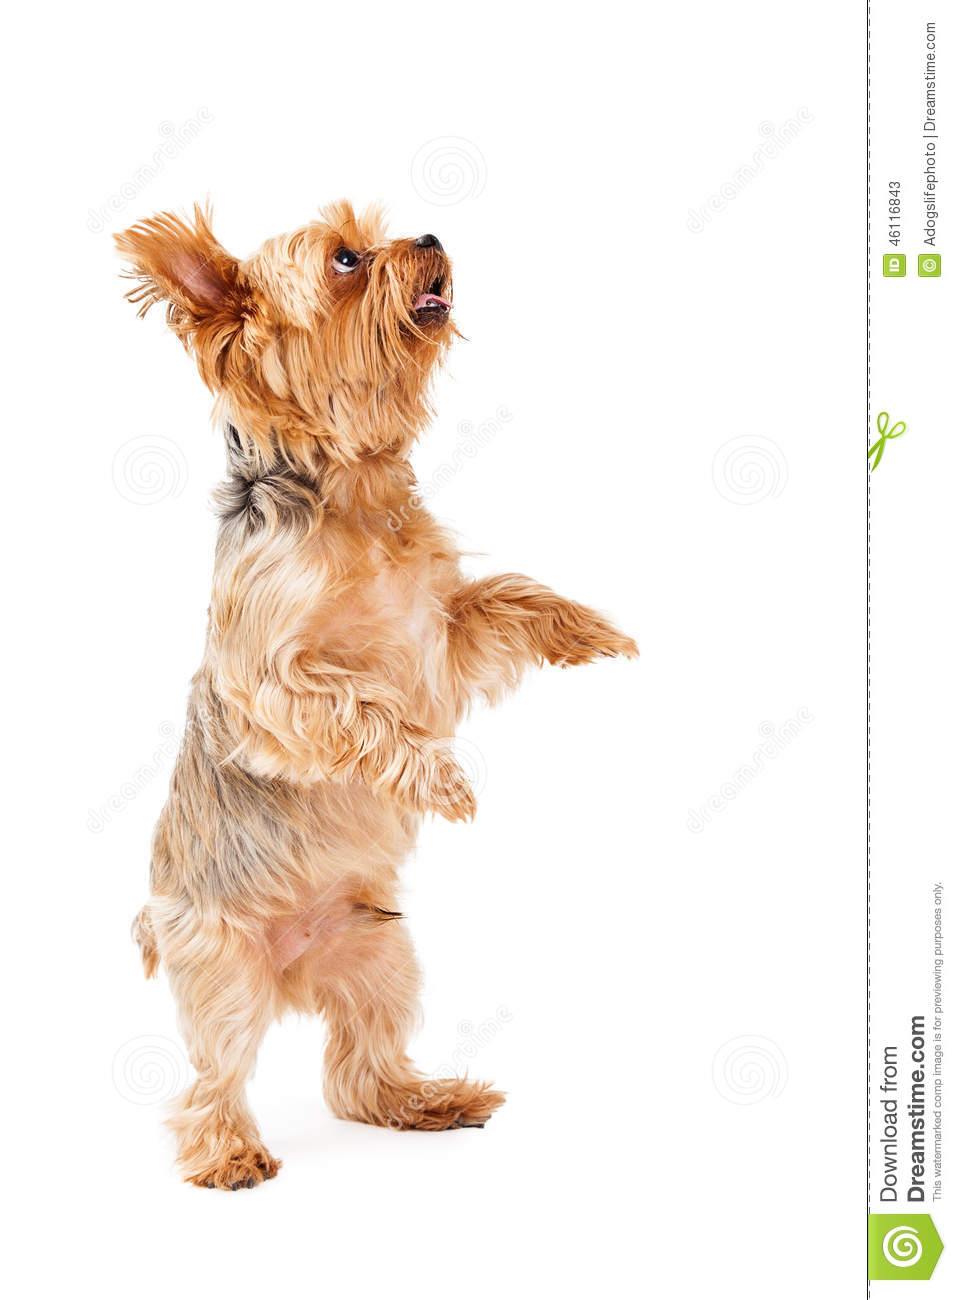 Talented Yorkshire Terrier Puppy Dancing Stock Photo - Image: 46116843